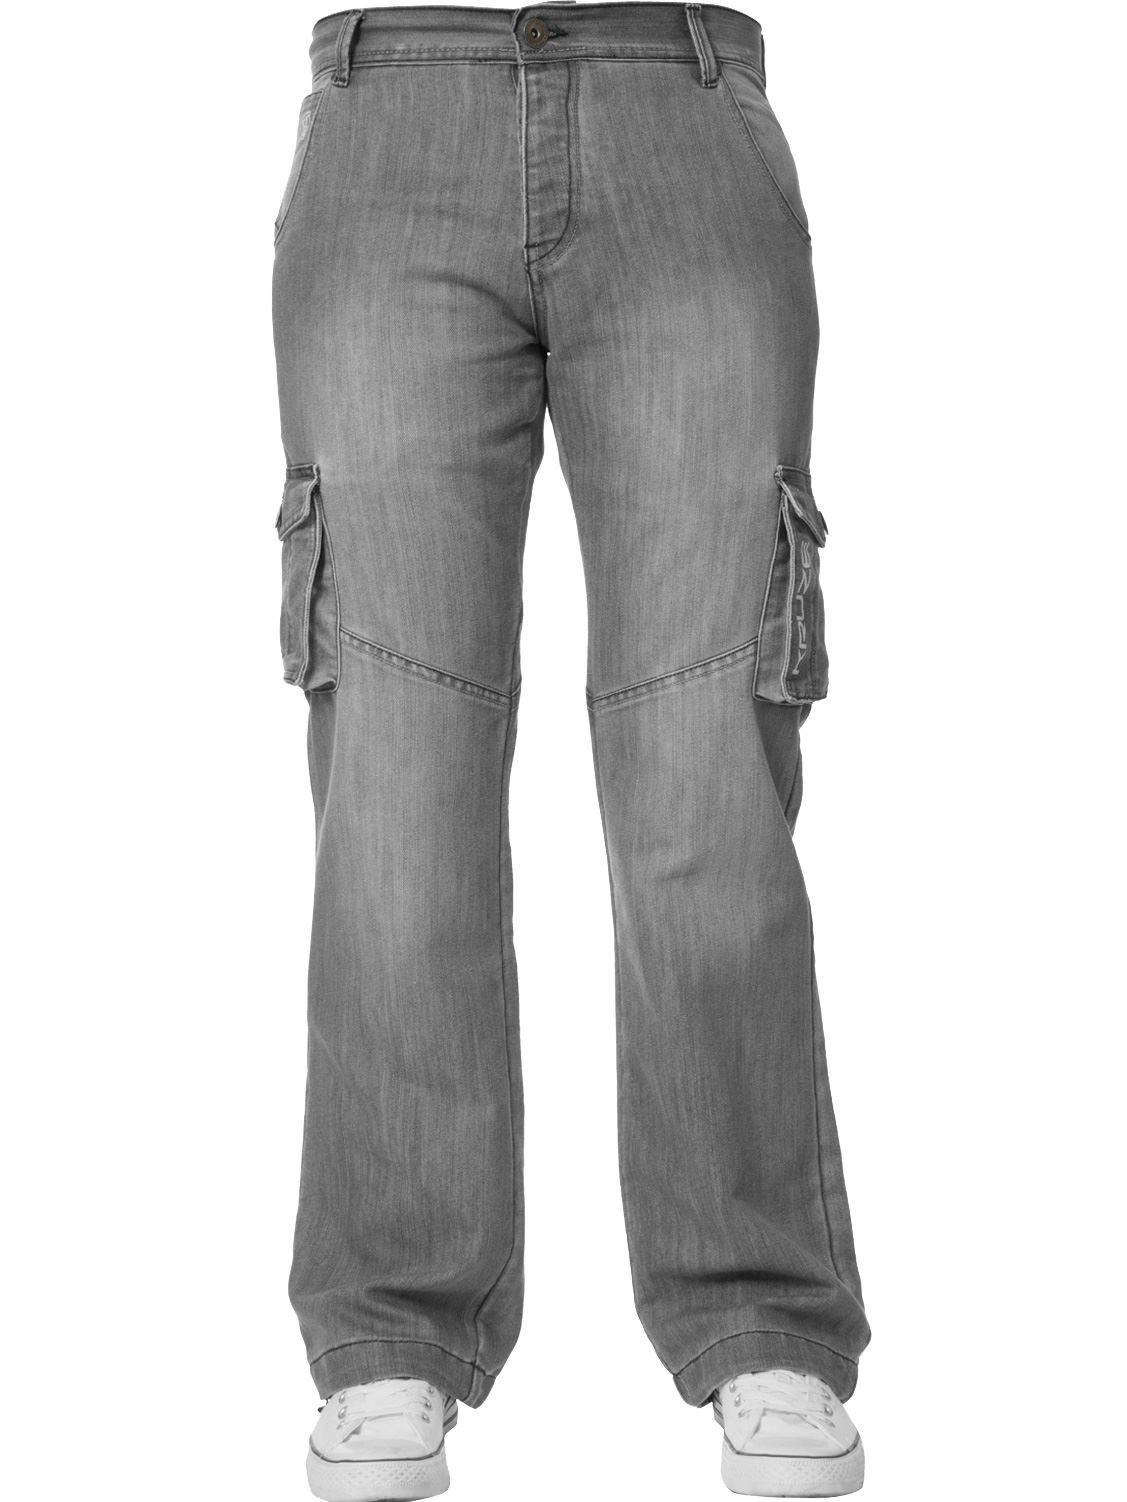 Kruze-Mens-Cargo-Combat-Jeans-Casual-Work-Denim-Pants-Big-Tall-All-Waist-Sizes thumbnail 36